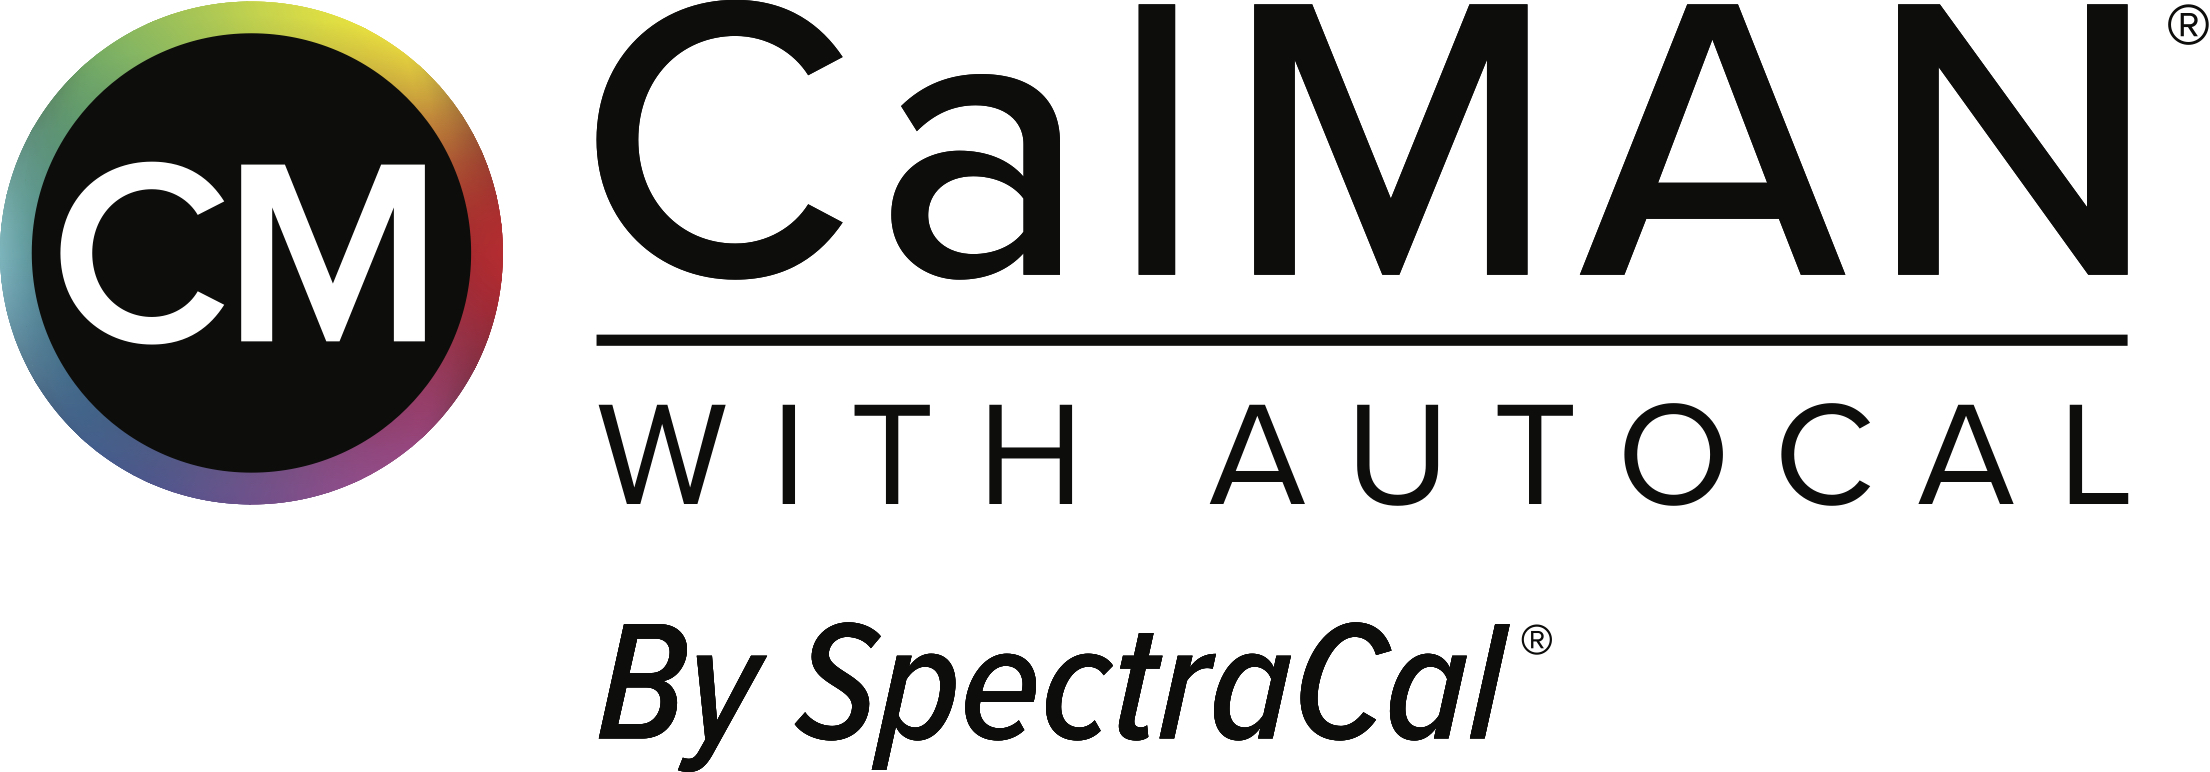 CalMAN by SpectraCal